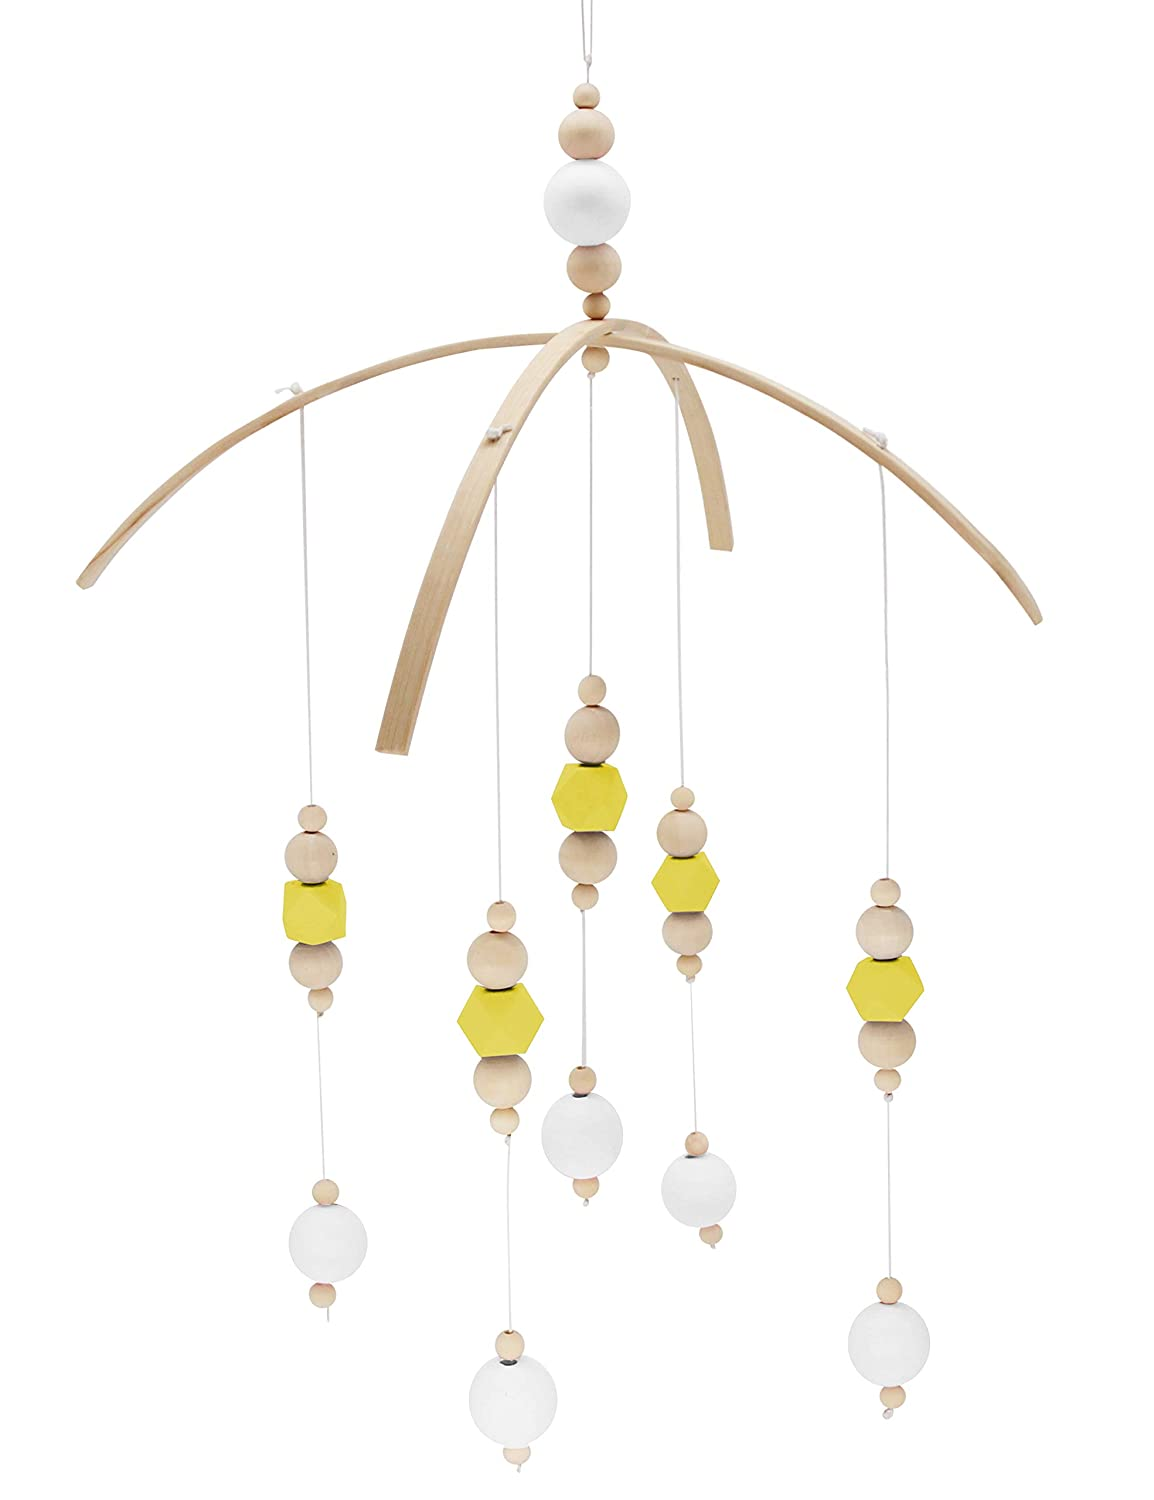 Designer Colors to Match Your Nursery and Delight Your Child 100/% Wooden Beads for Your Boy or Girl Babies Bed Room Dark Gray-11.819.2In Baby Crib Mobile